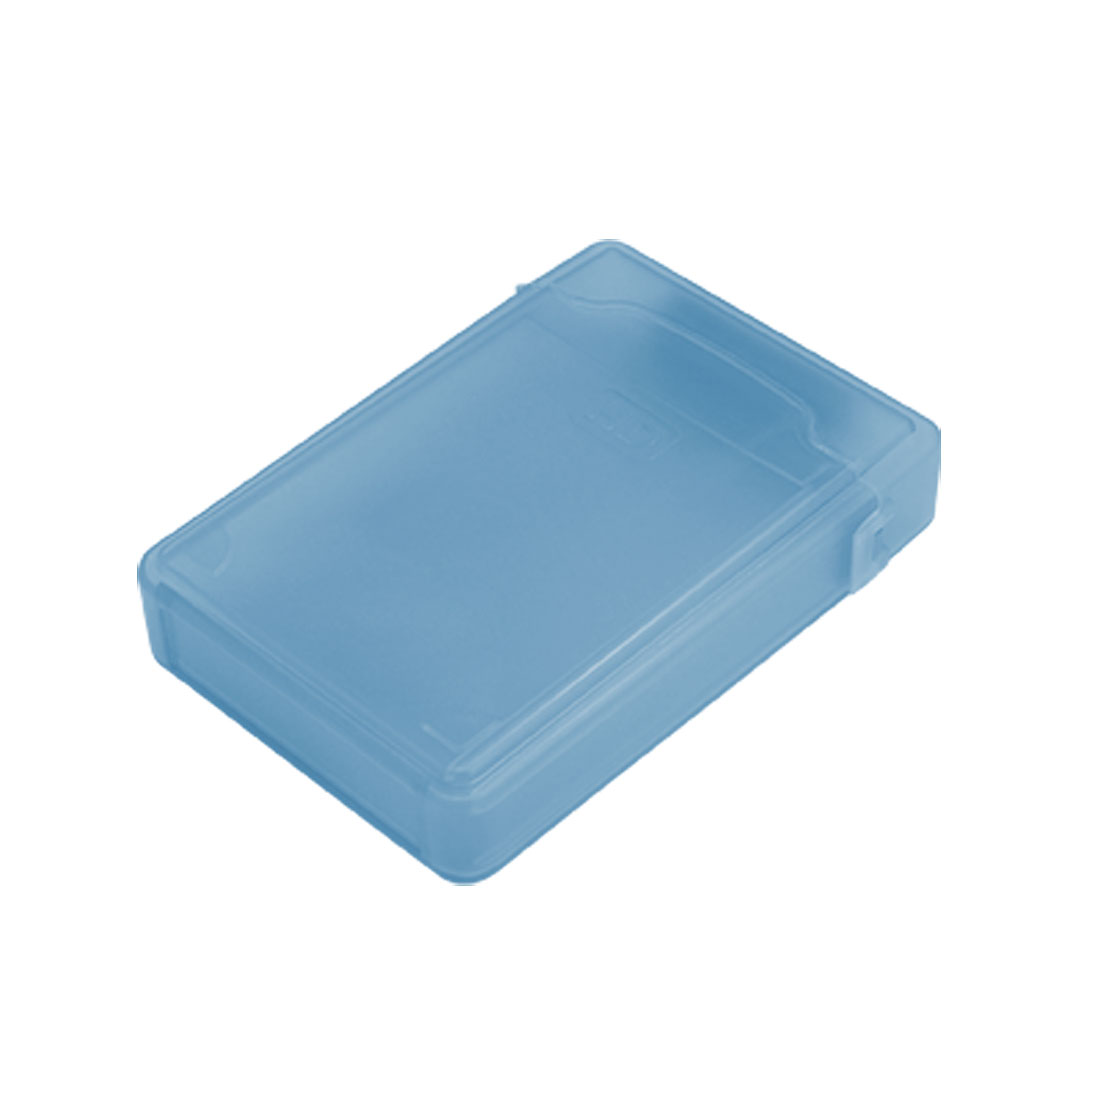 Portable IDE SATA Hard Drive HDD Store Tank Box Case Blue 3.5 Inch